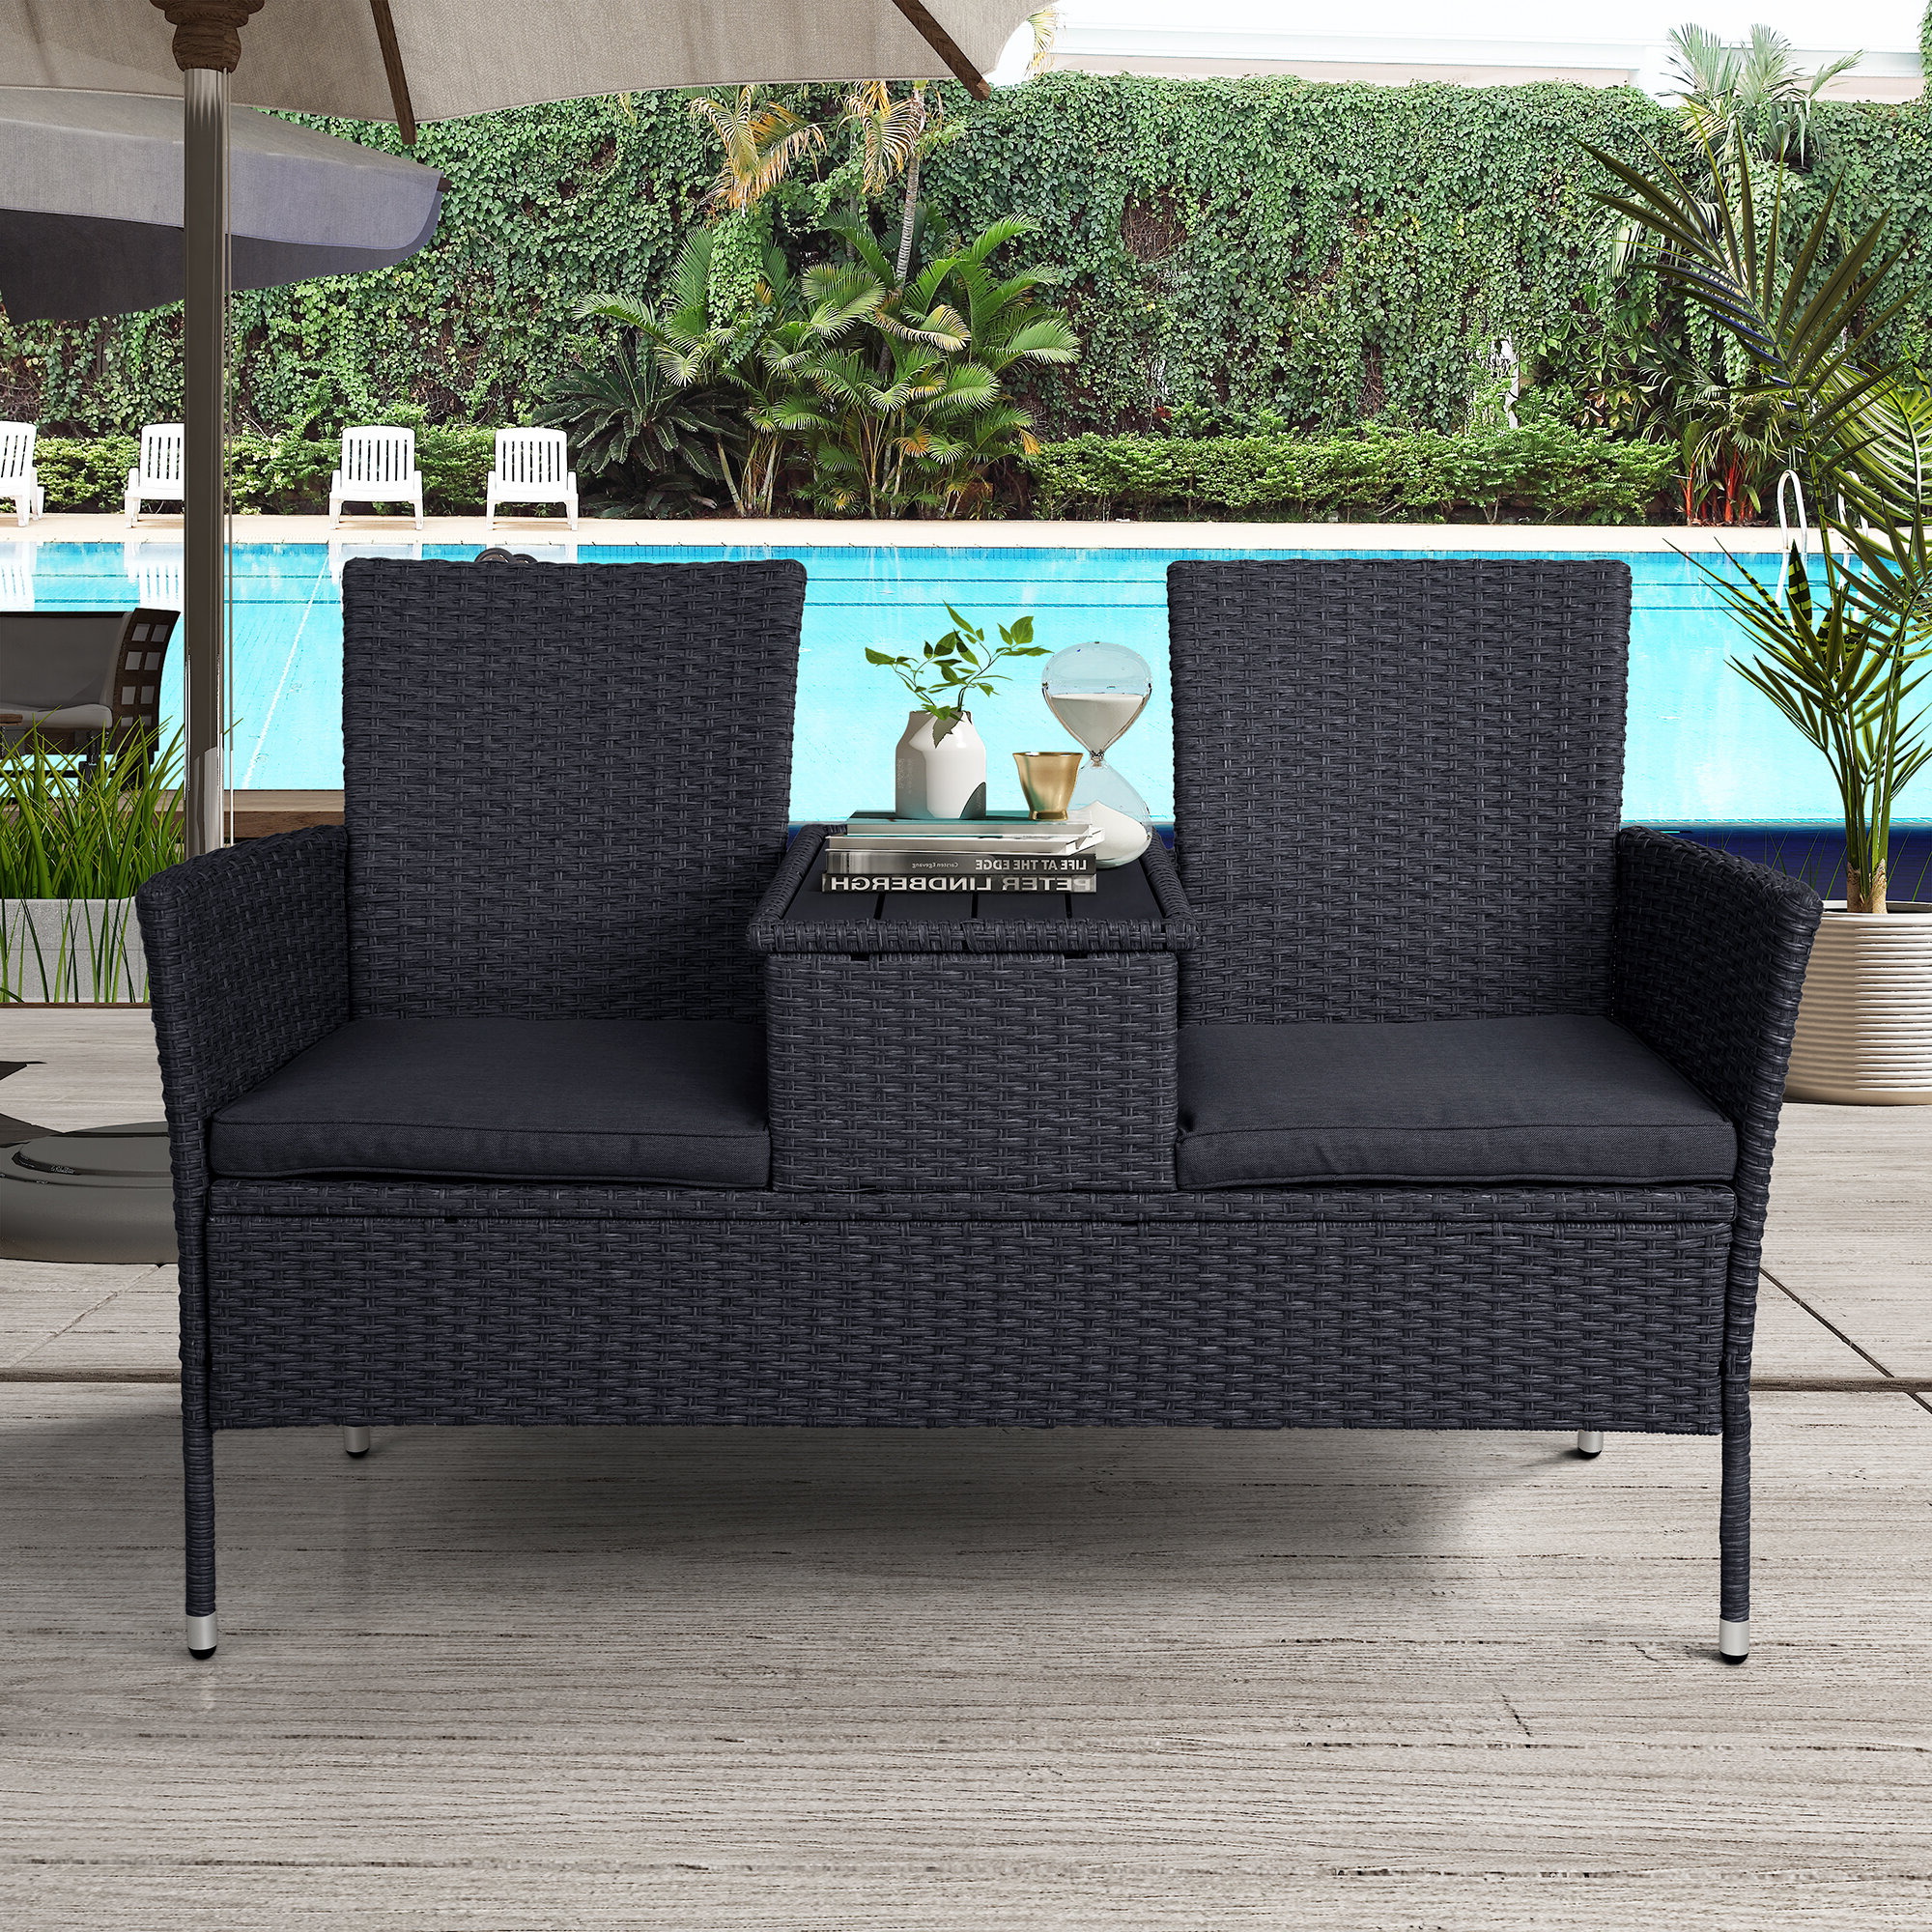 Most Recently Released Menoher Outdoor Loveseat With Cushions For Castelli Loveseats With Cushions (View 6 of 20)